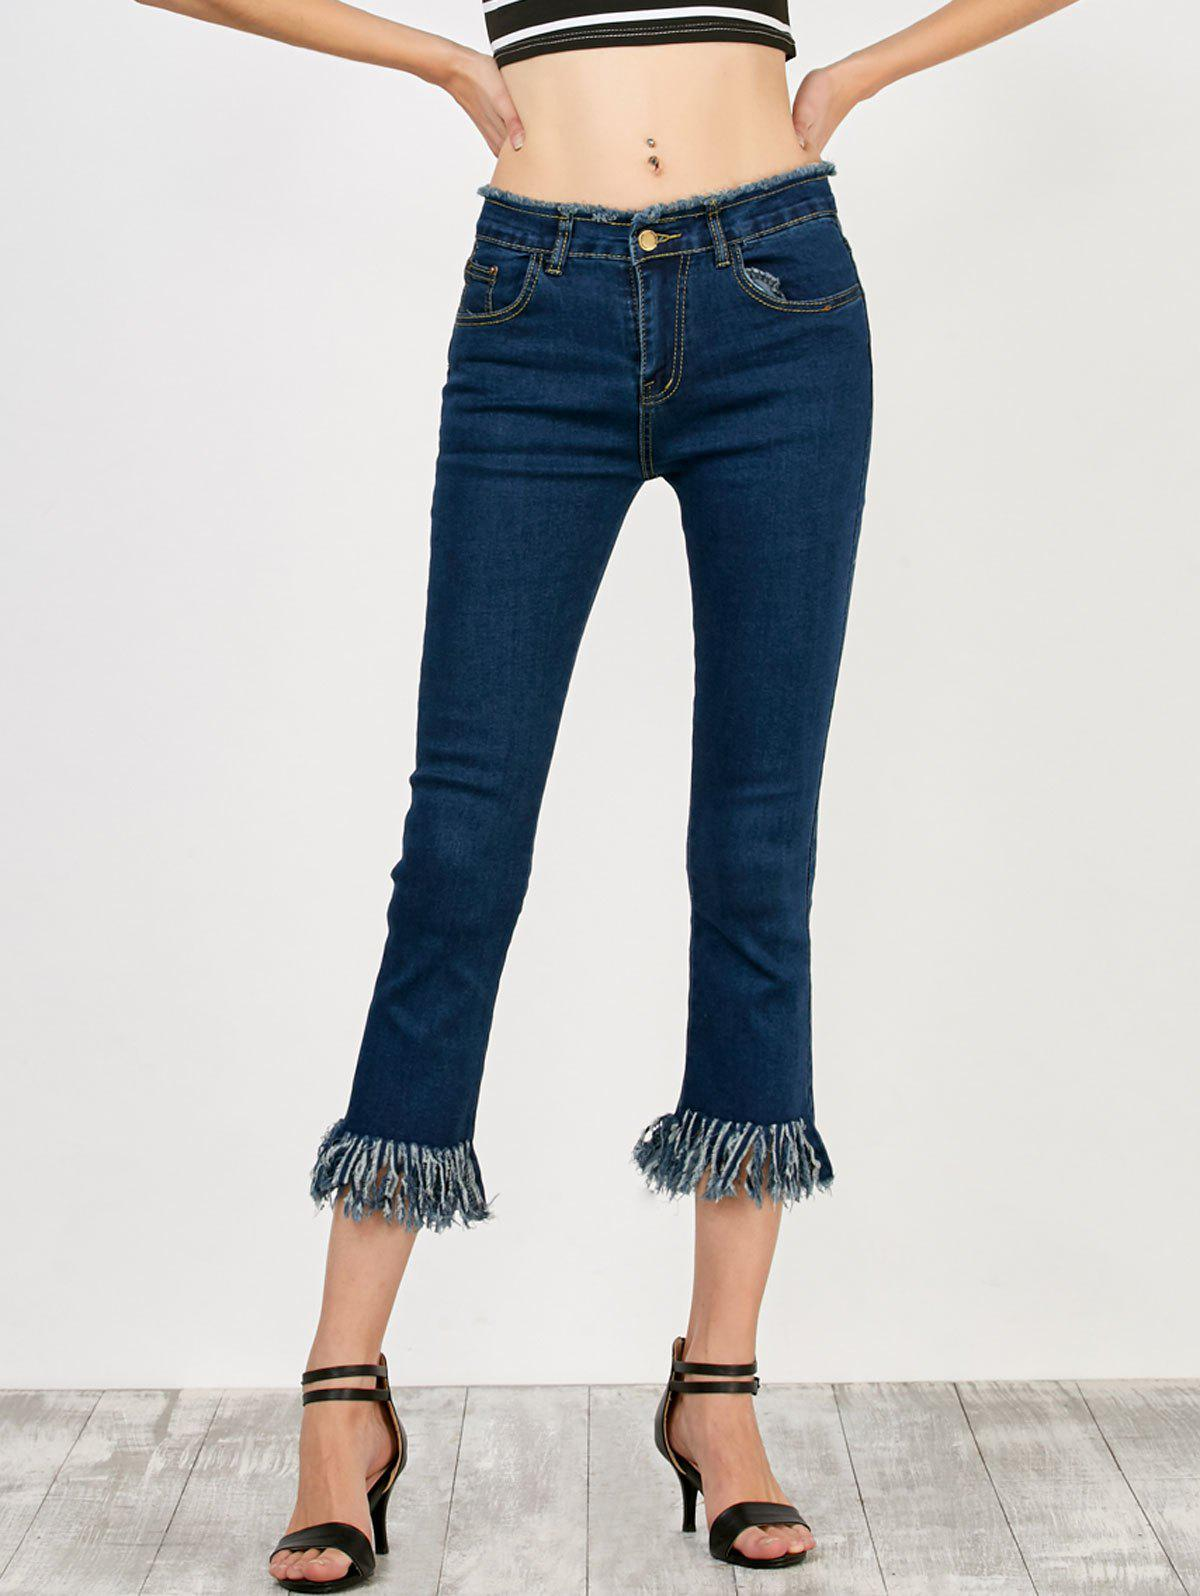 Fringed High Rise Cropped Jeans - DEEP BLUE XL